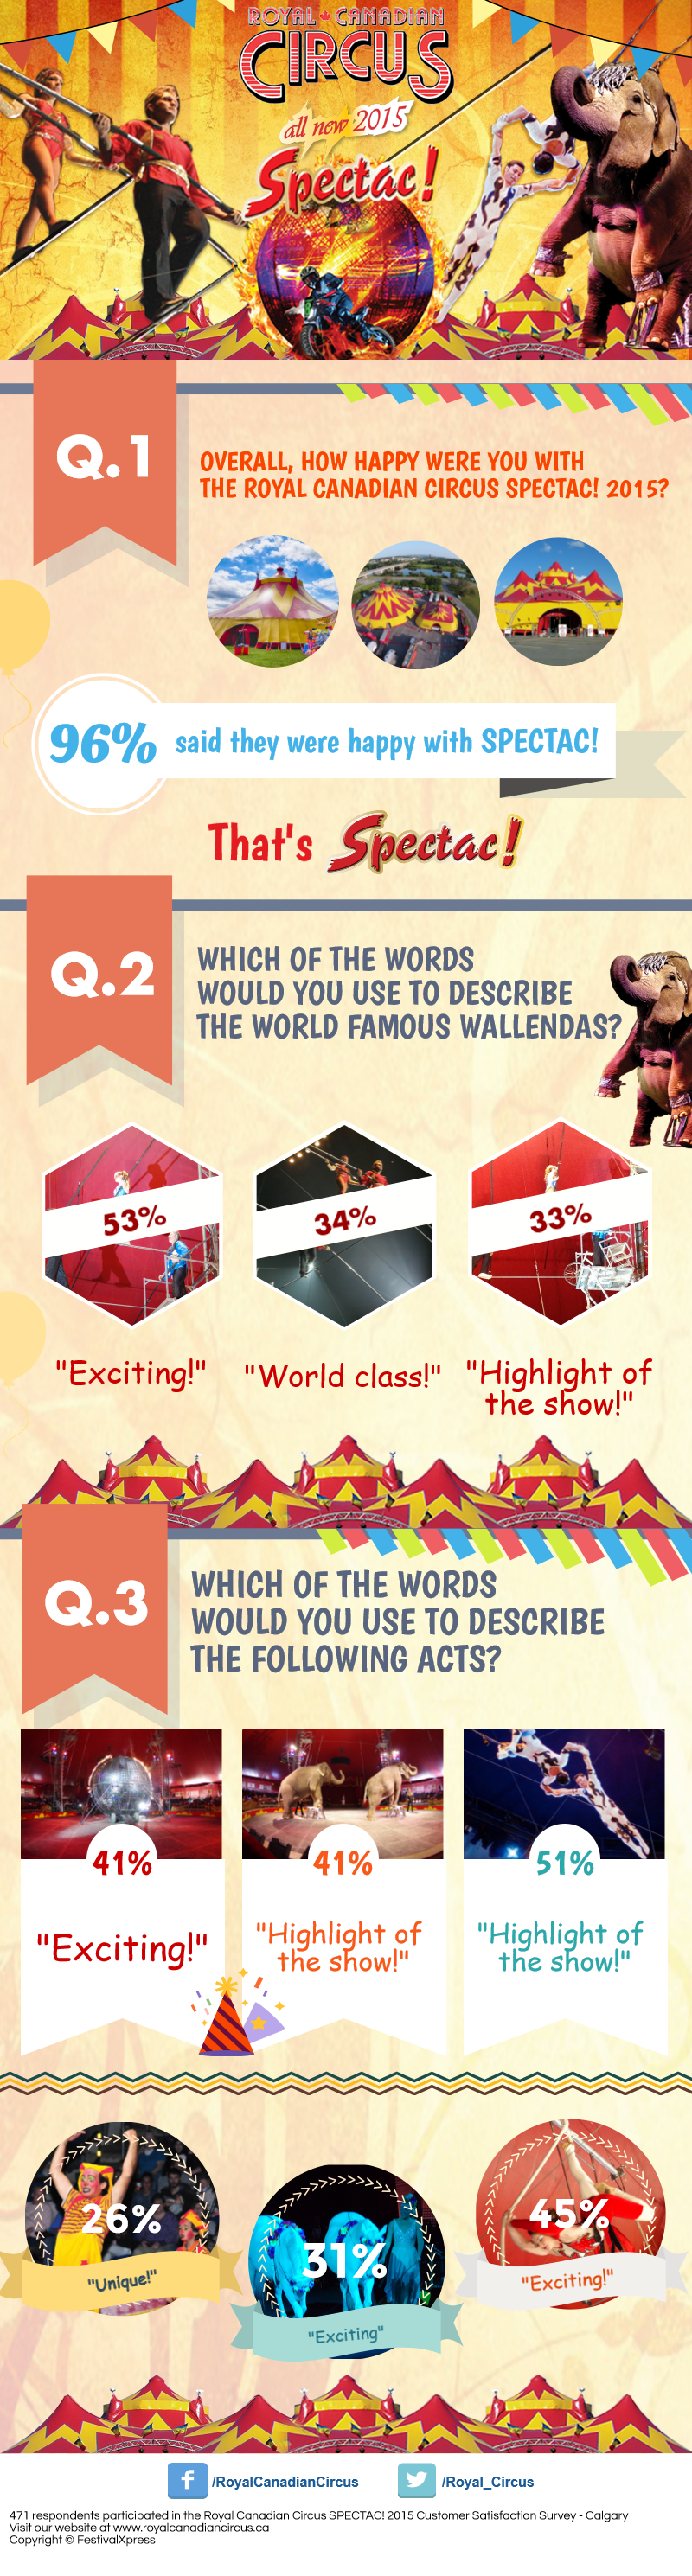 Royal Canadian Circus SPECTAC 2015 survey image